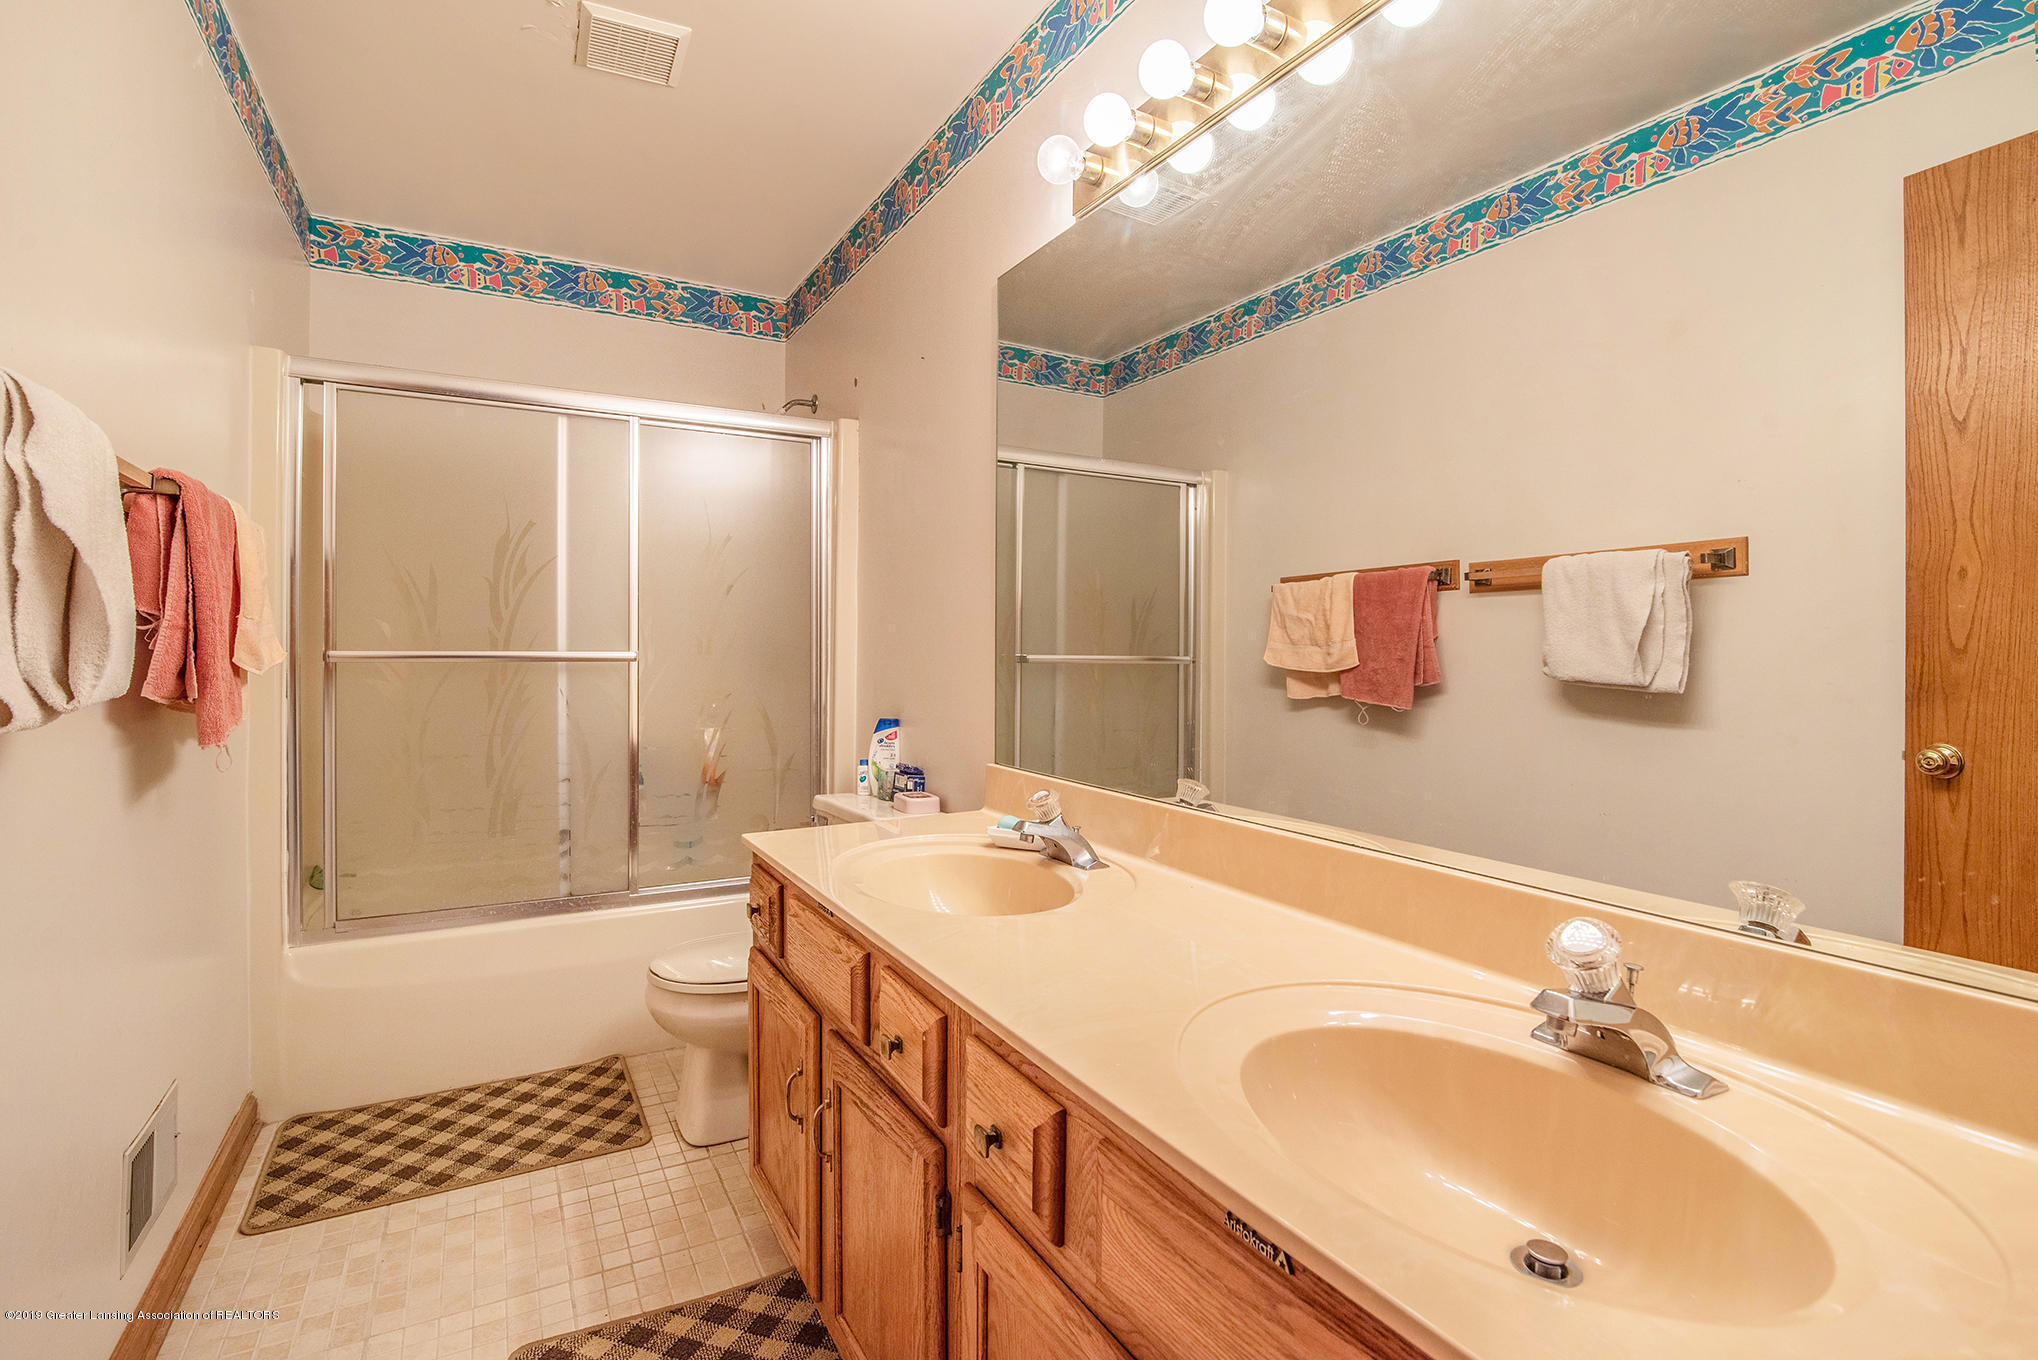 3752 Chippendale Dr - 5 - 20